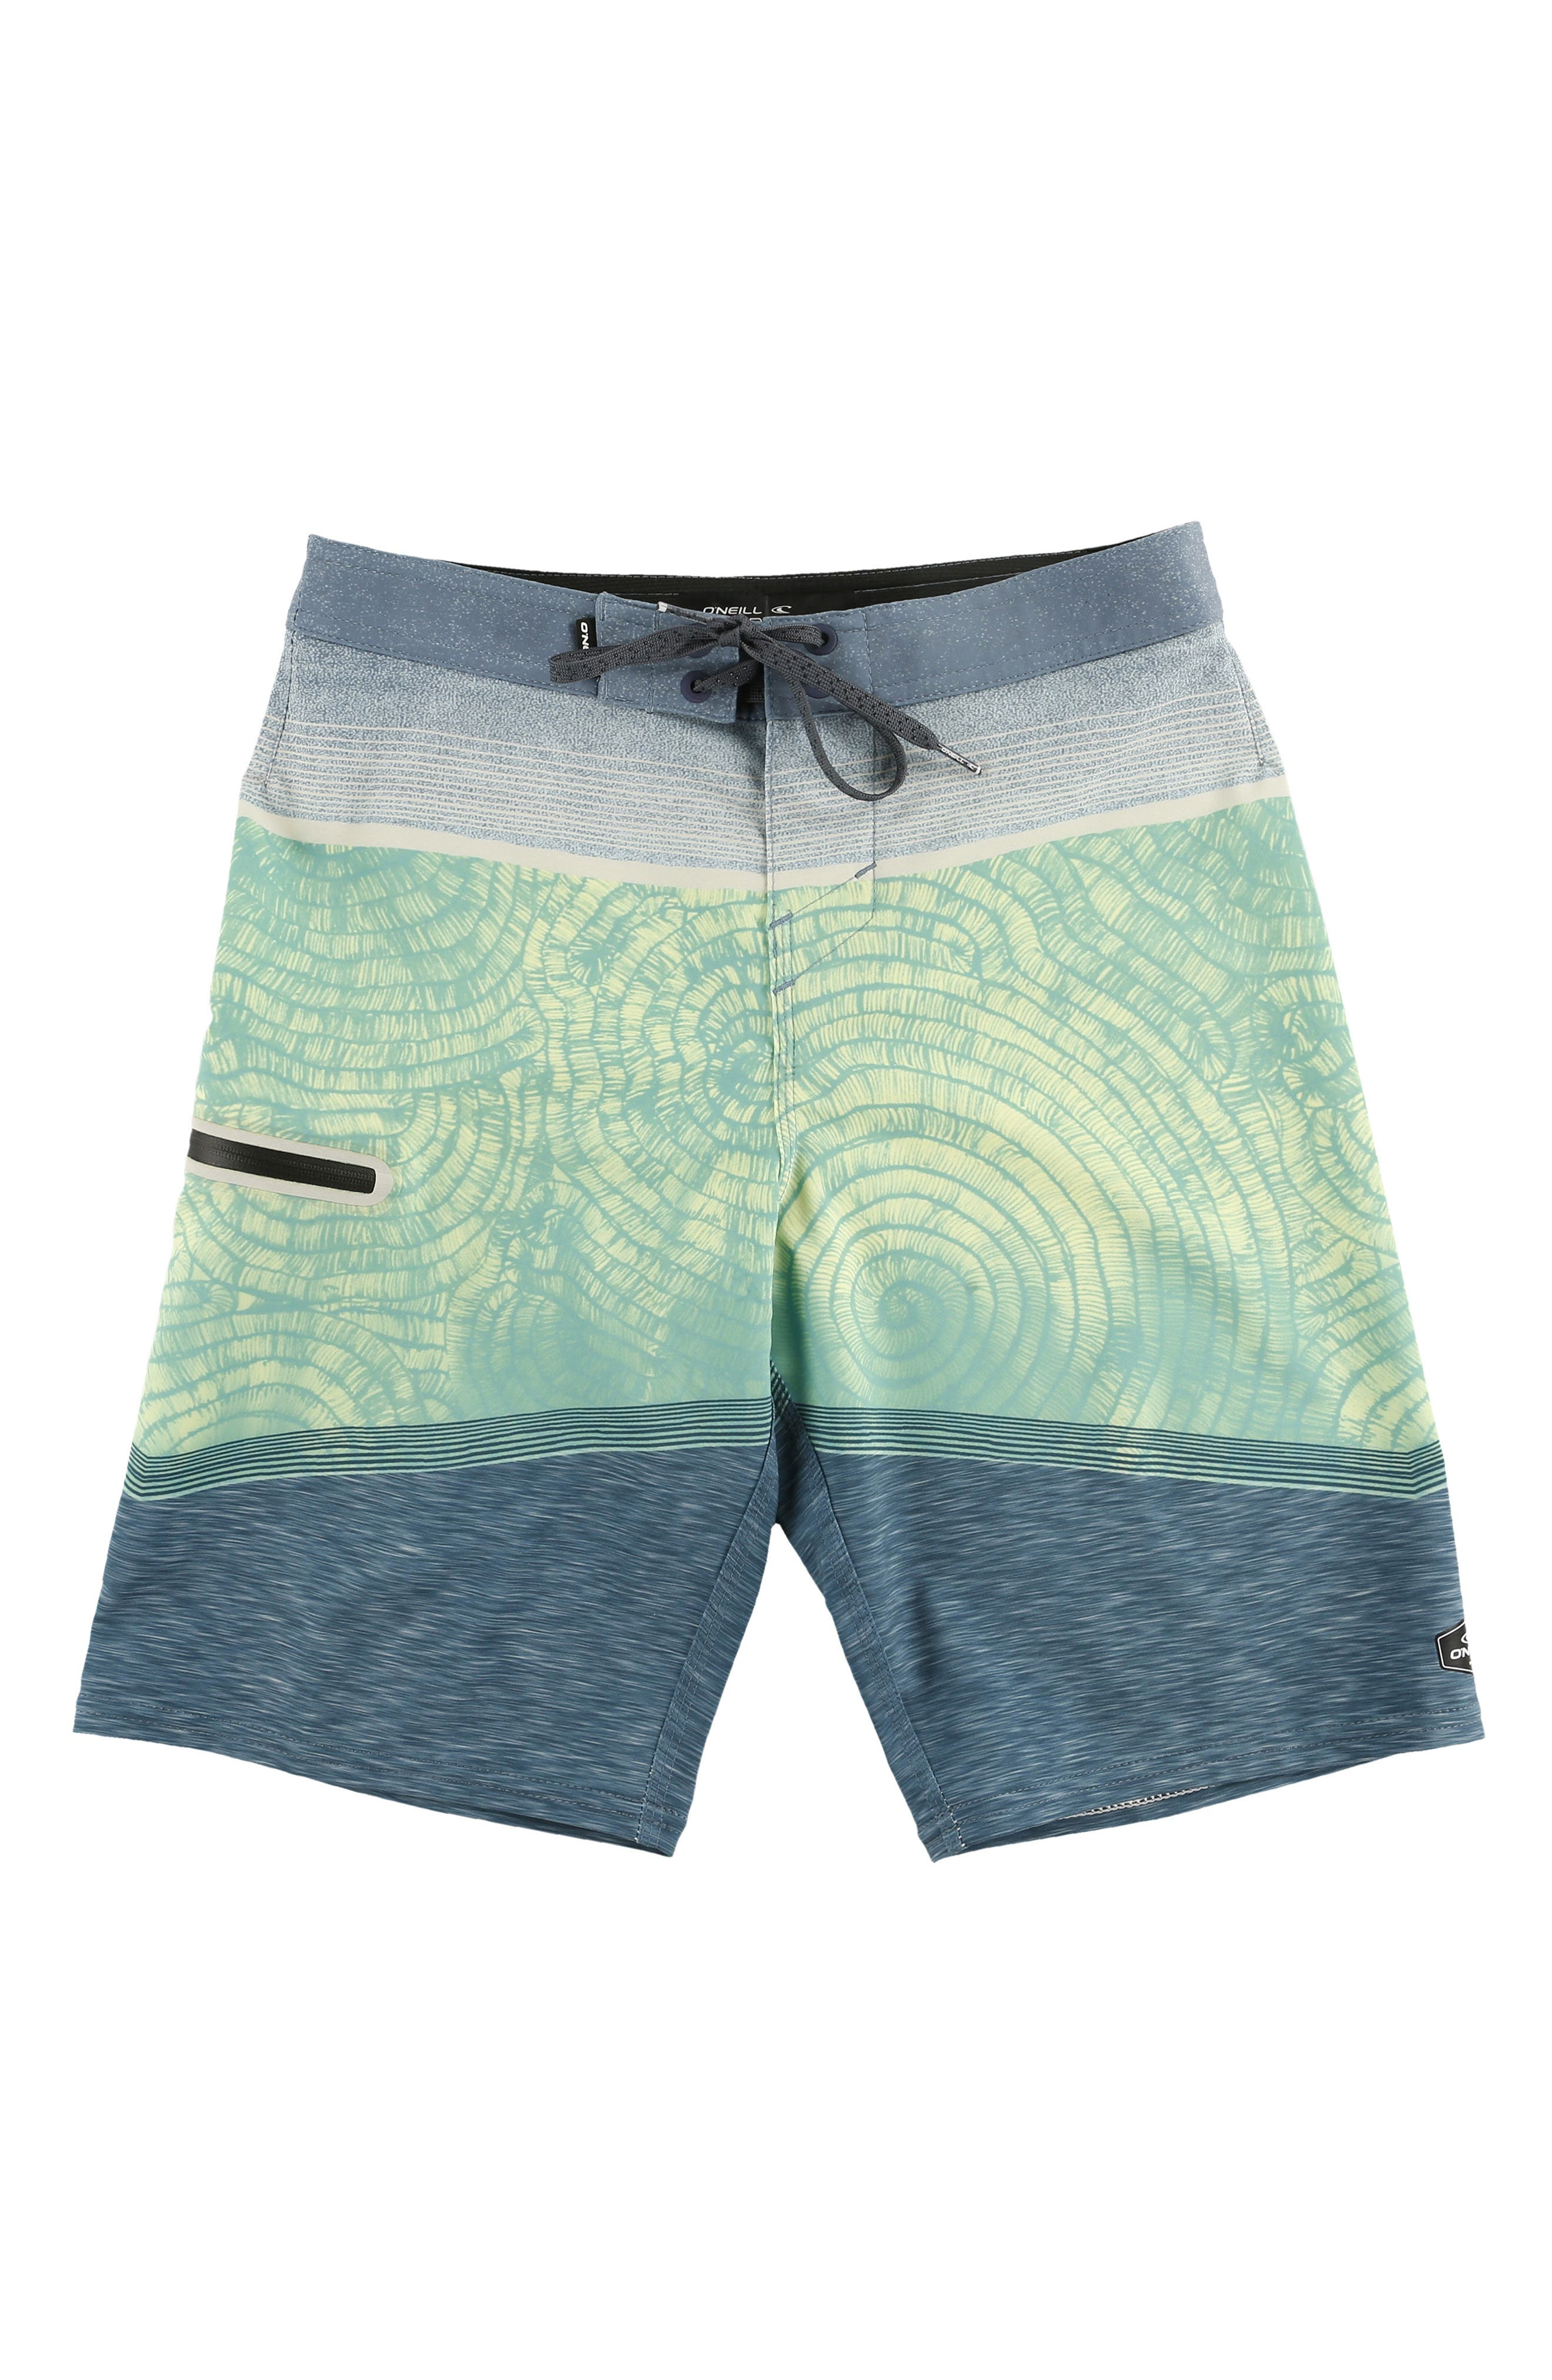 Hyperfreak Board Shorts,                         Main,                         color, AQUARIUS